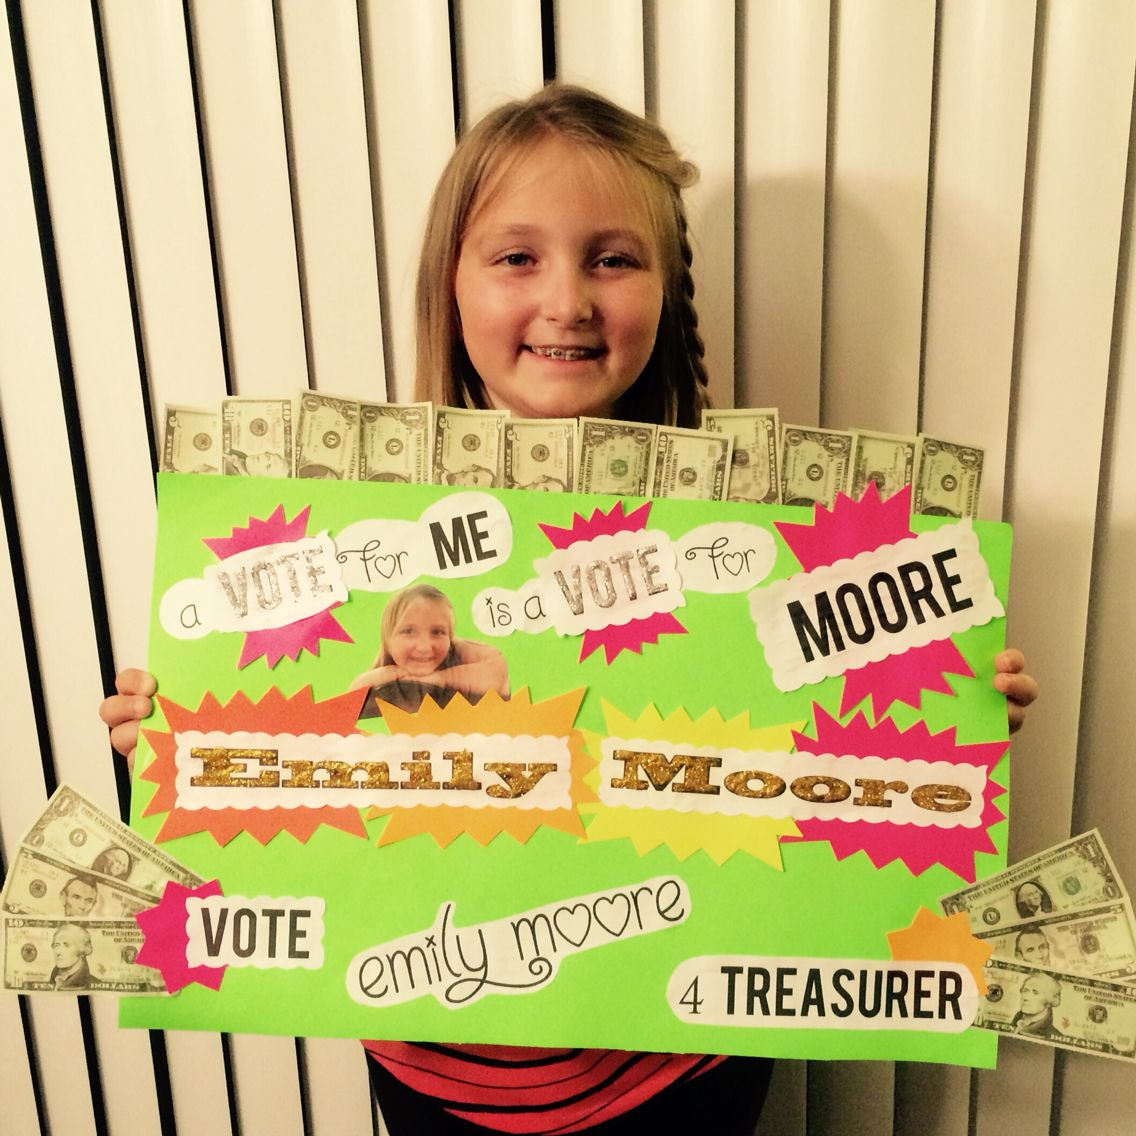 Student Council Treasurer Poster Student council posters